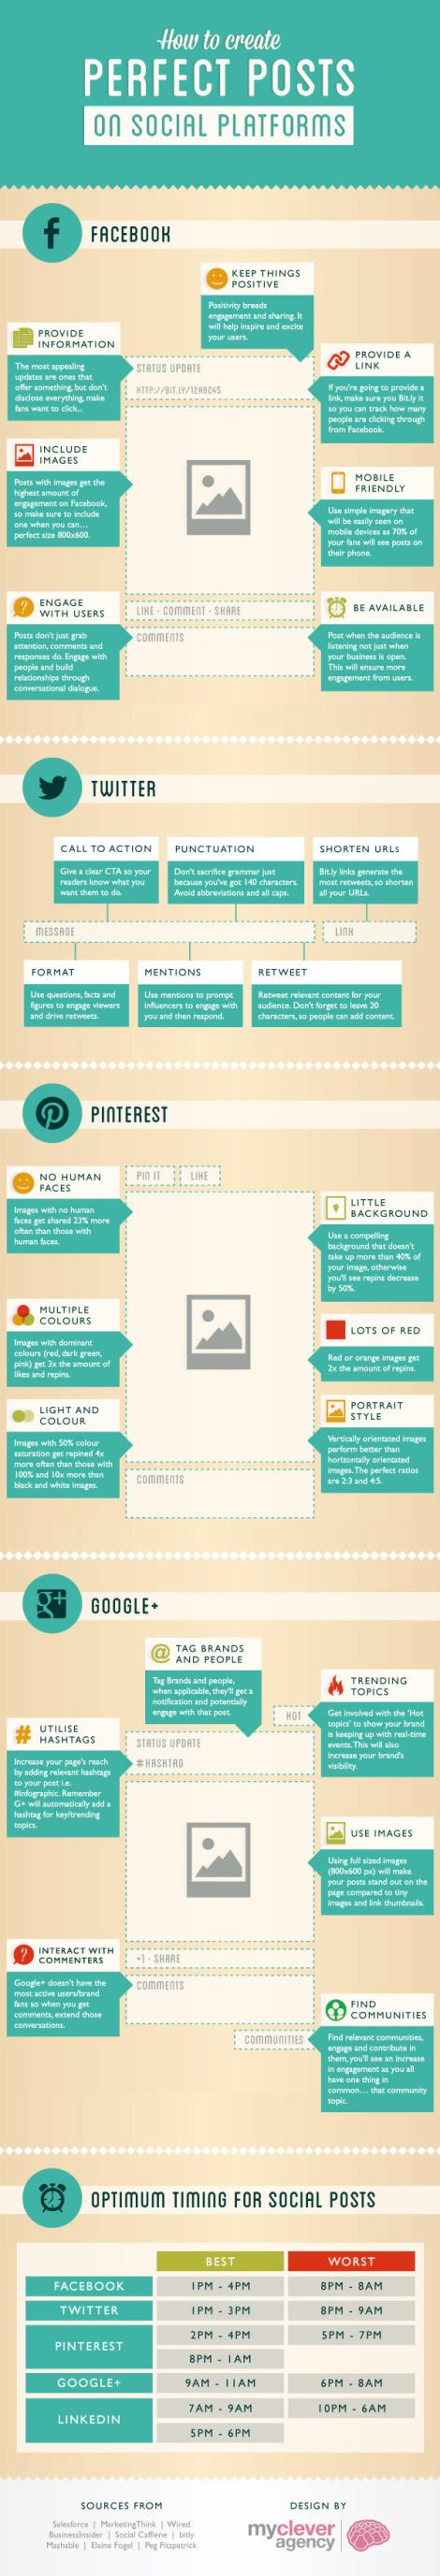 create-perfect-social-media-posts-infographic